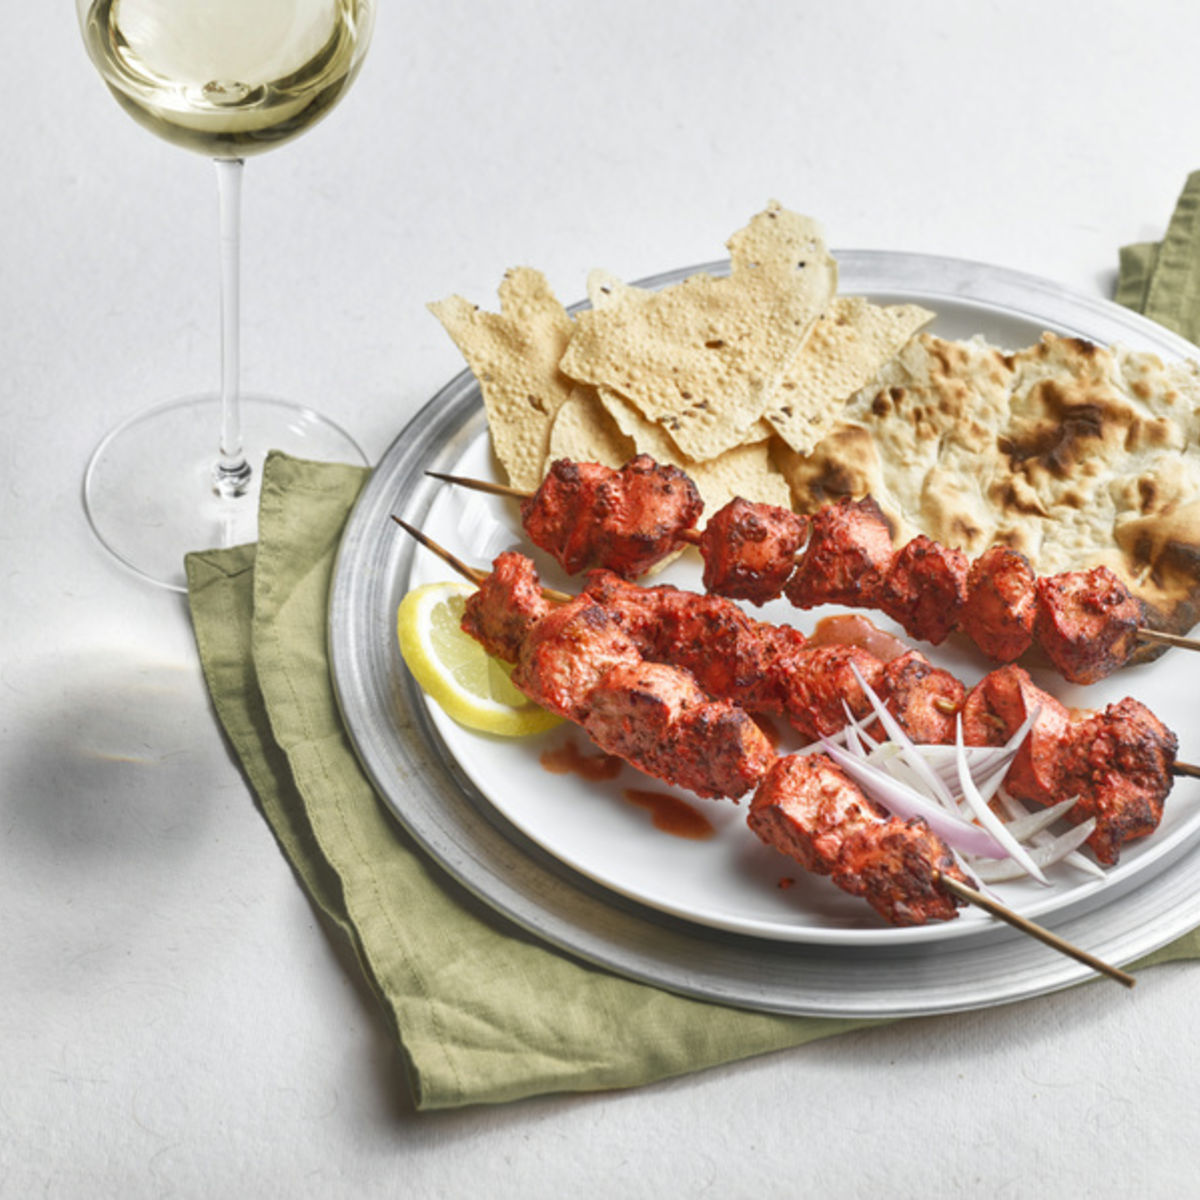 The picture shows Tandoori Chicken and a glass of white wine.